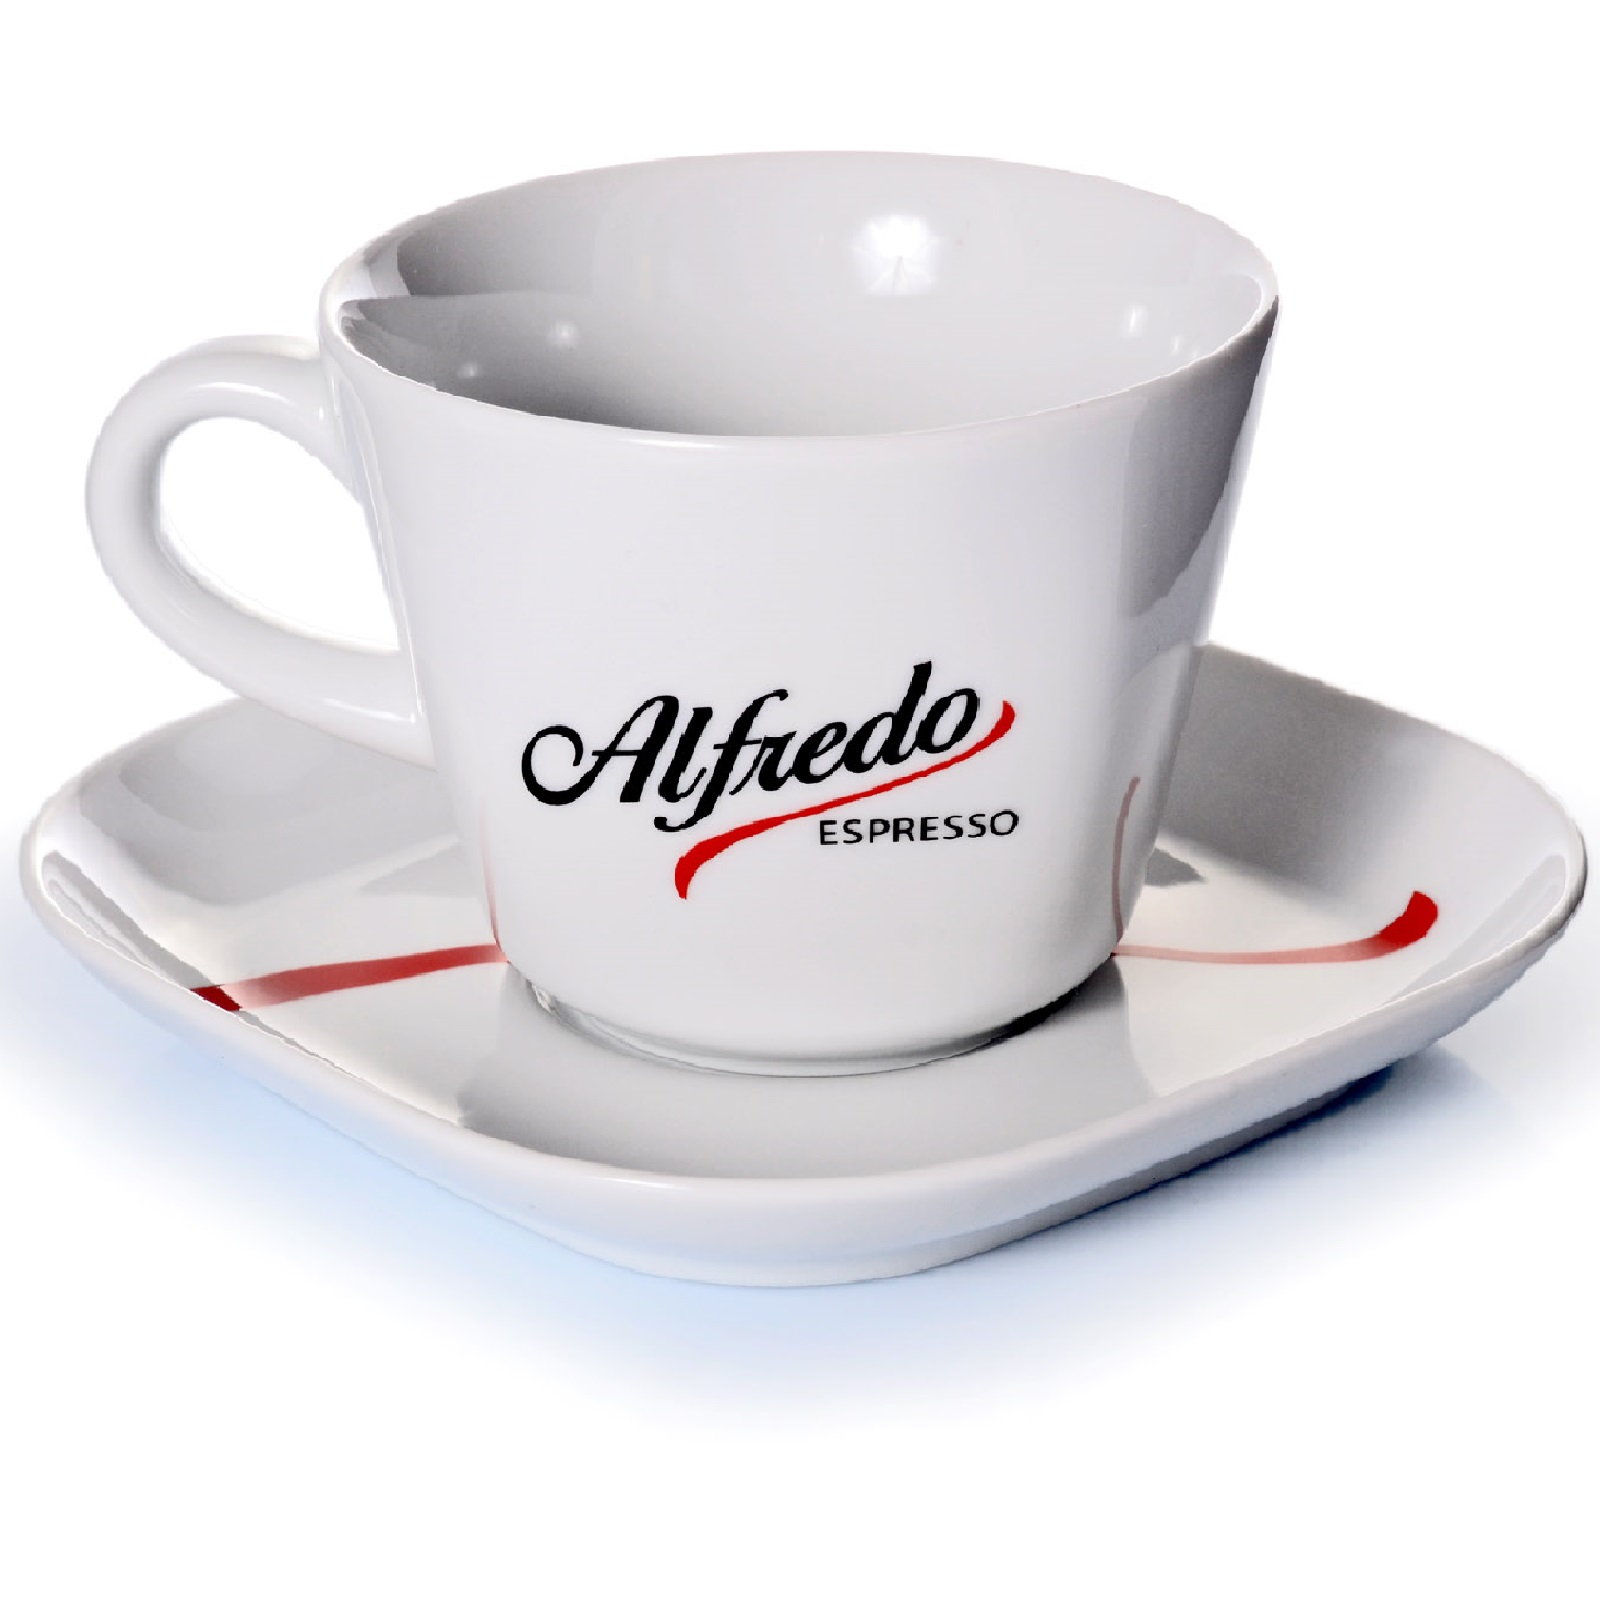 alfredo espresso geschirr 2 teilig milchkaffee tassse mit untertasse 0 30 l ebay. Black Bedroom Furniture Sets. Home Design Ideas